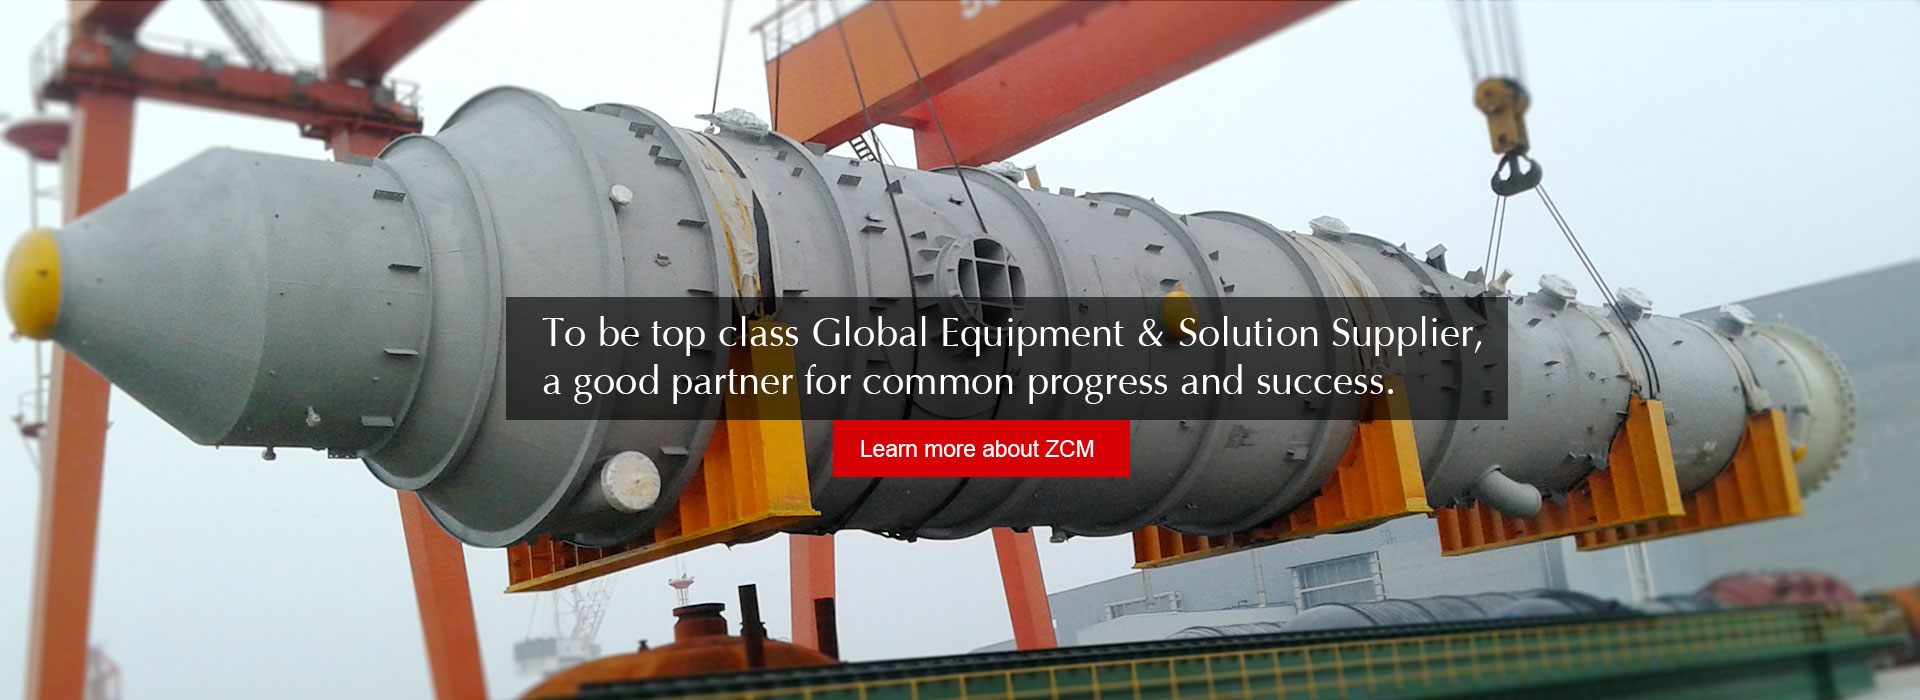 To be top calss Global Equipment & Solution Supplier, a good partner for common progress and success.